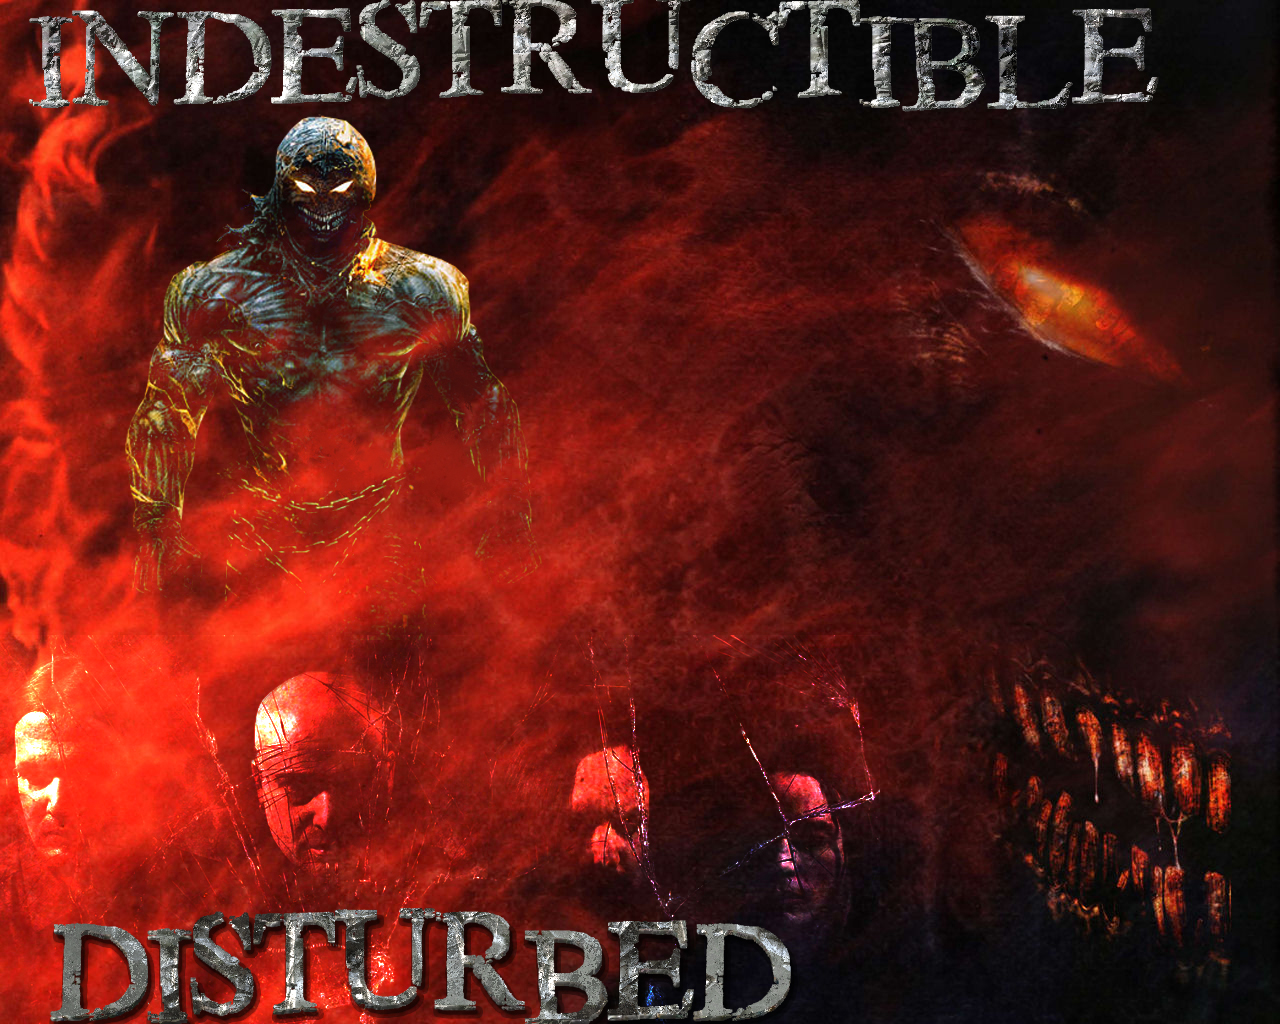 Disturbed Computer Wallpapers Desktop Backgrounds 1280x1024 ID 1280x1024